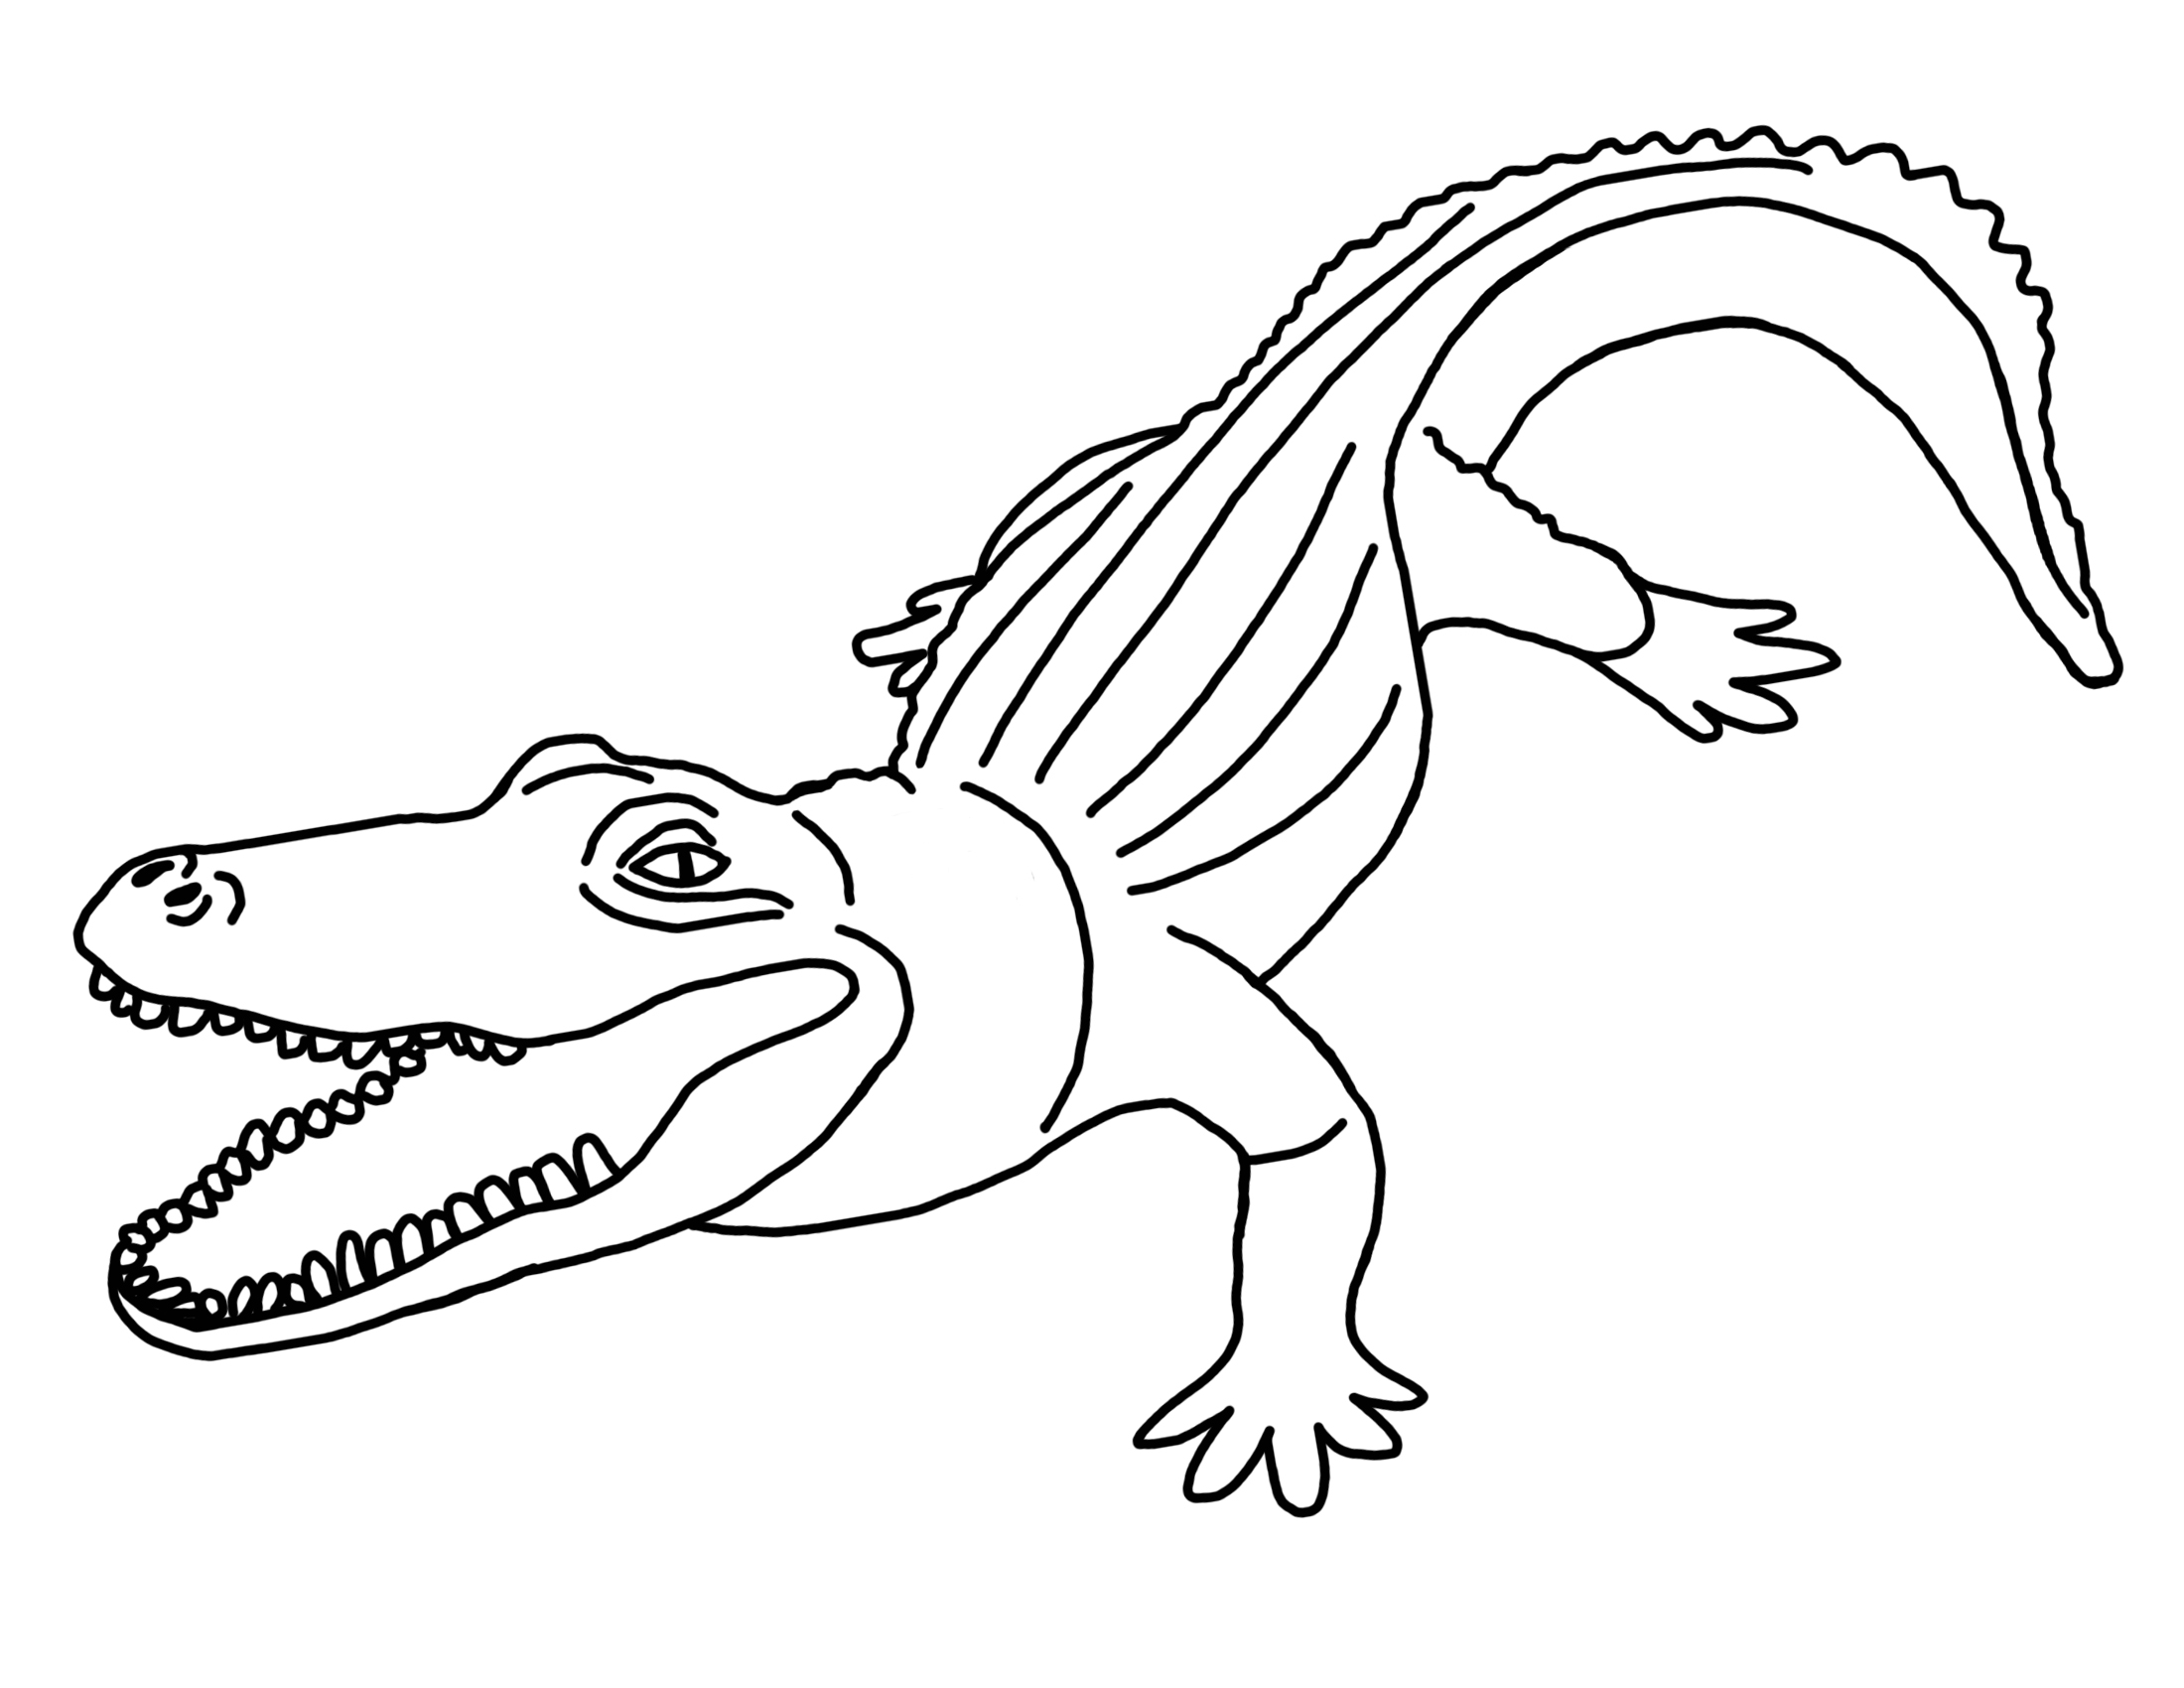 Baby Alligator And Python Coloring Coloring Pages Crocodile Coloring Pages To Print